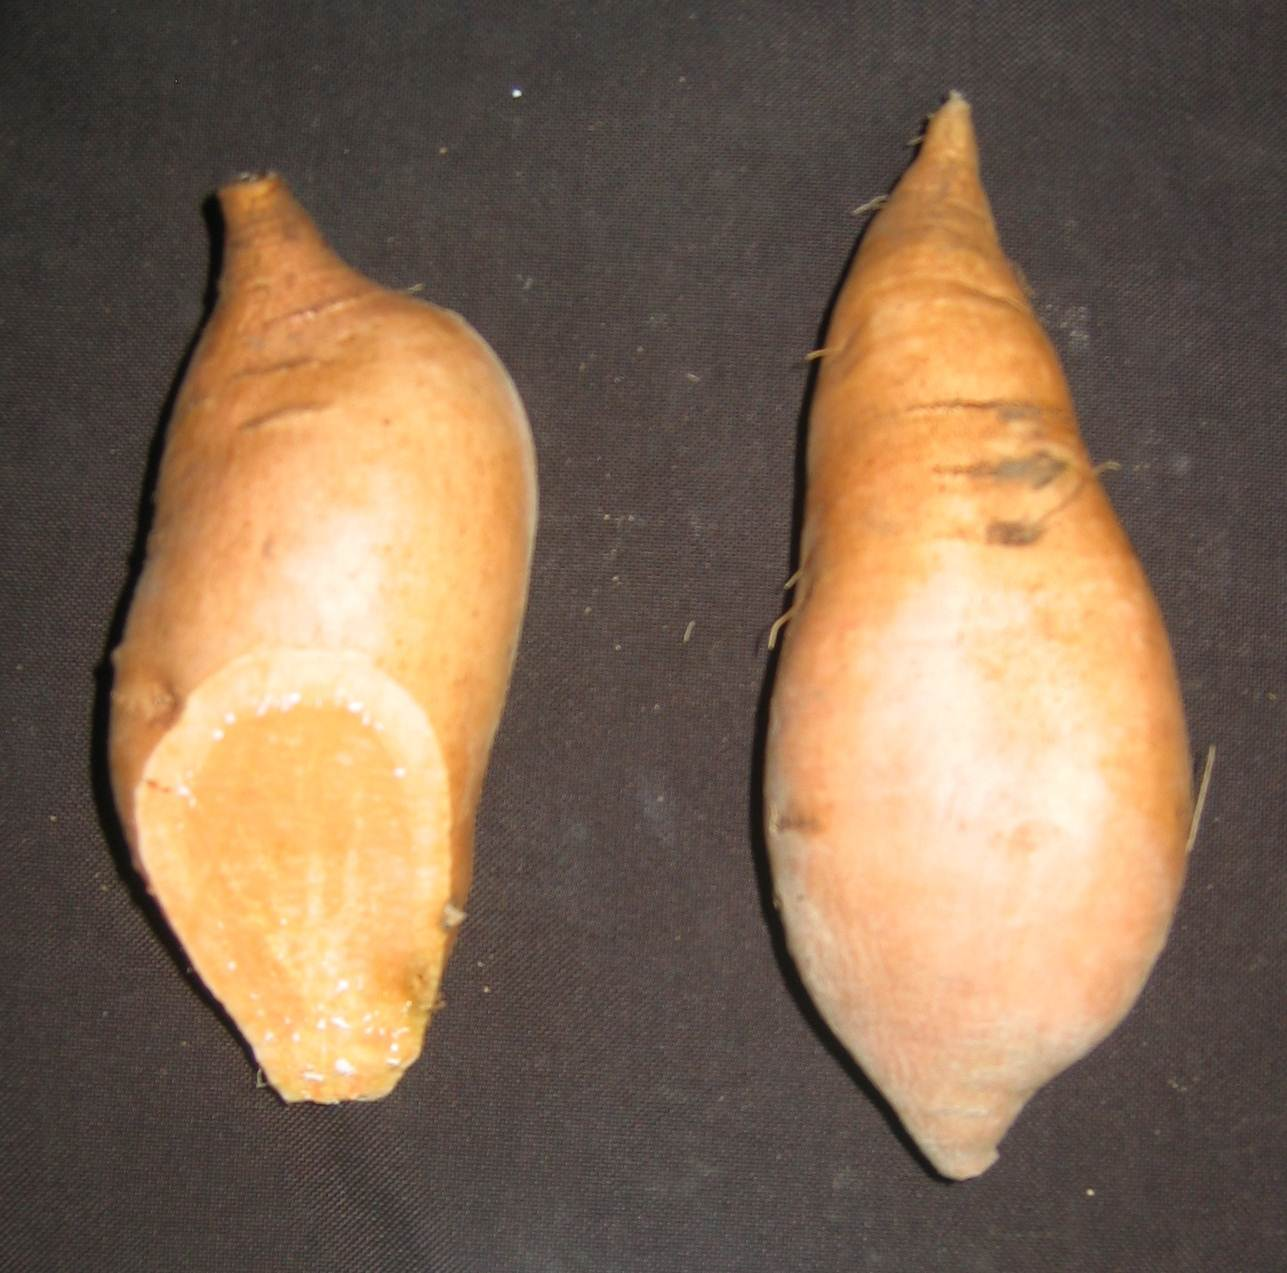 Two sweet potatoes with copper skin. One has end cut revealing salmon-colored flesh.